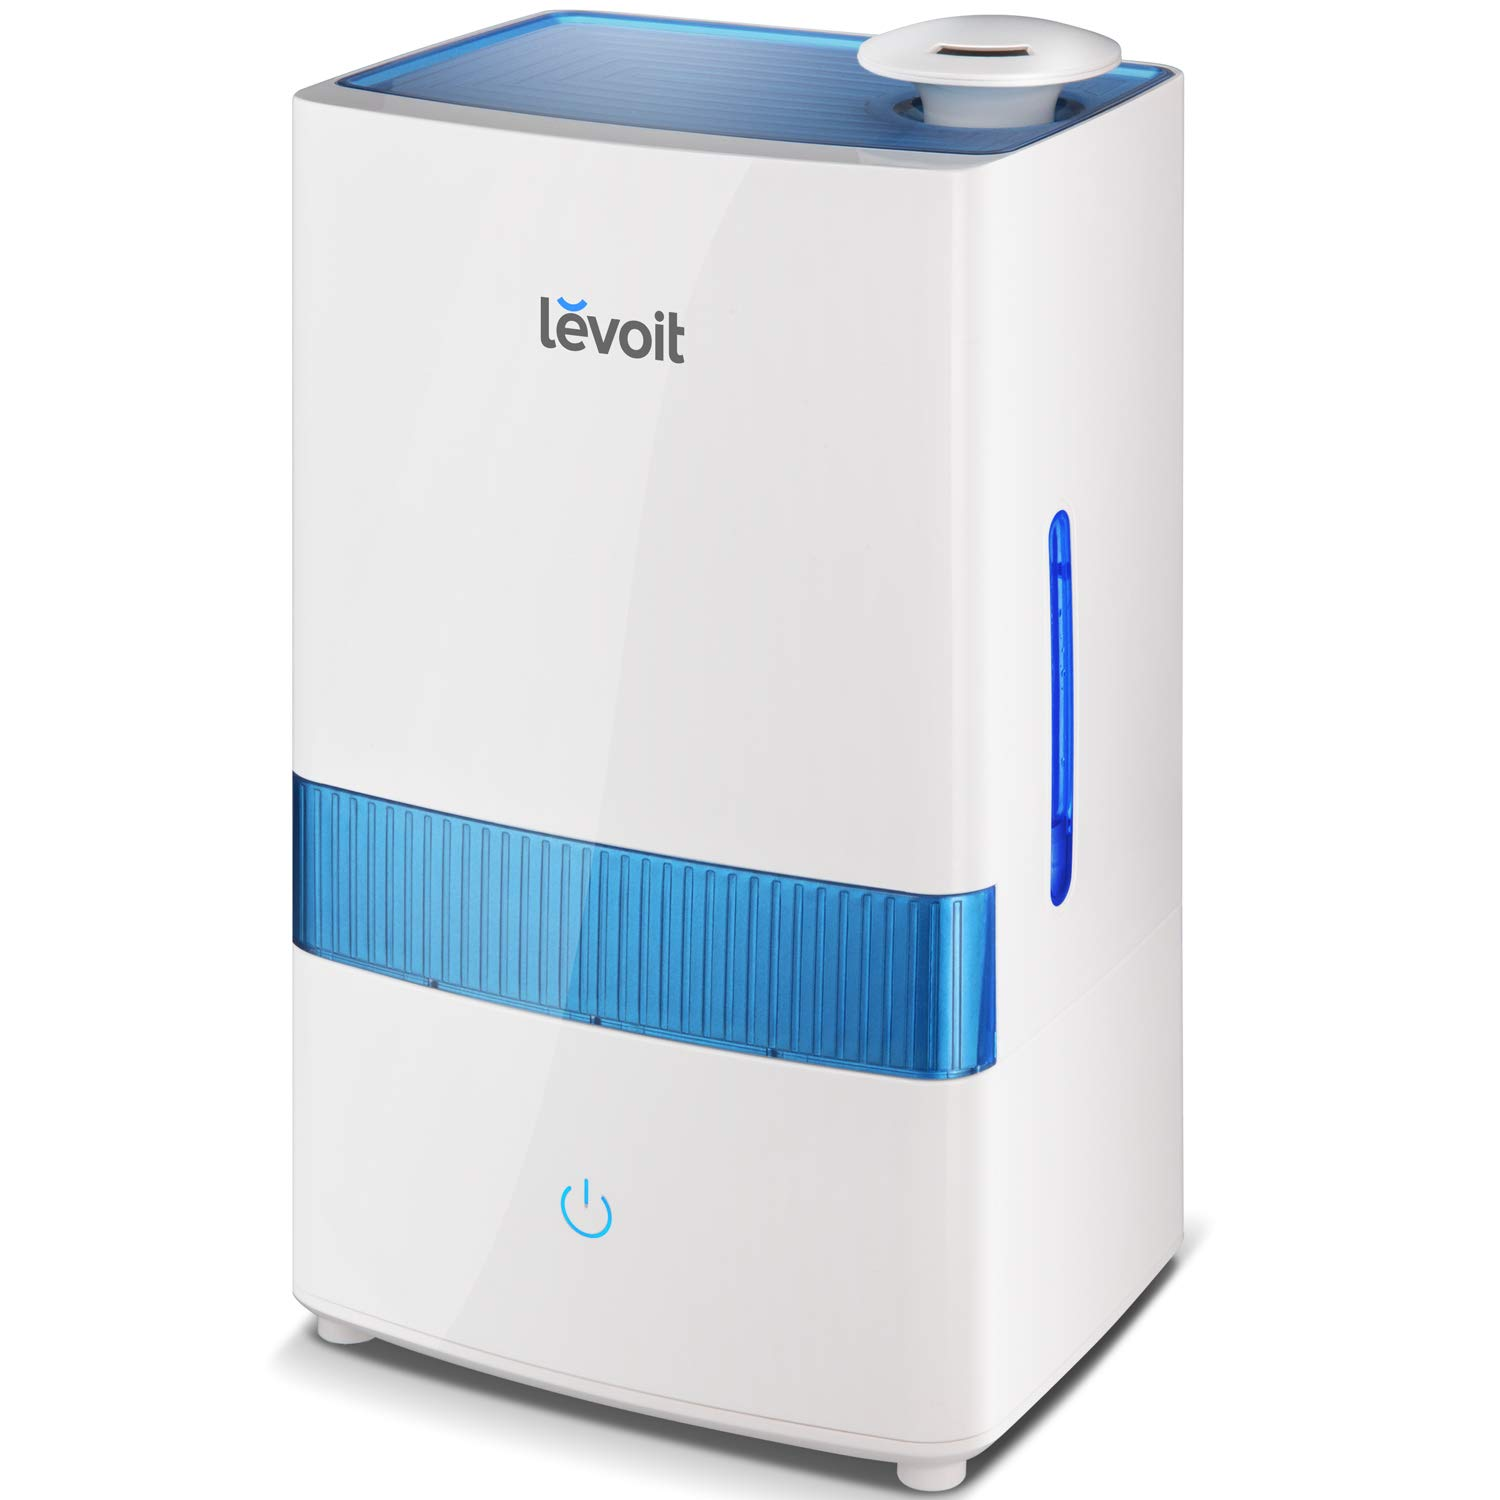 LEVOIT Cool Mist Humidifier Large Capacity